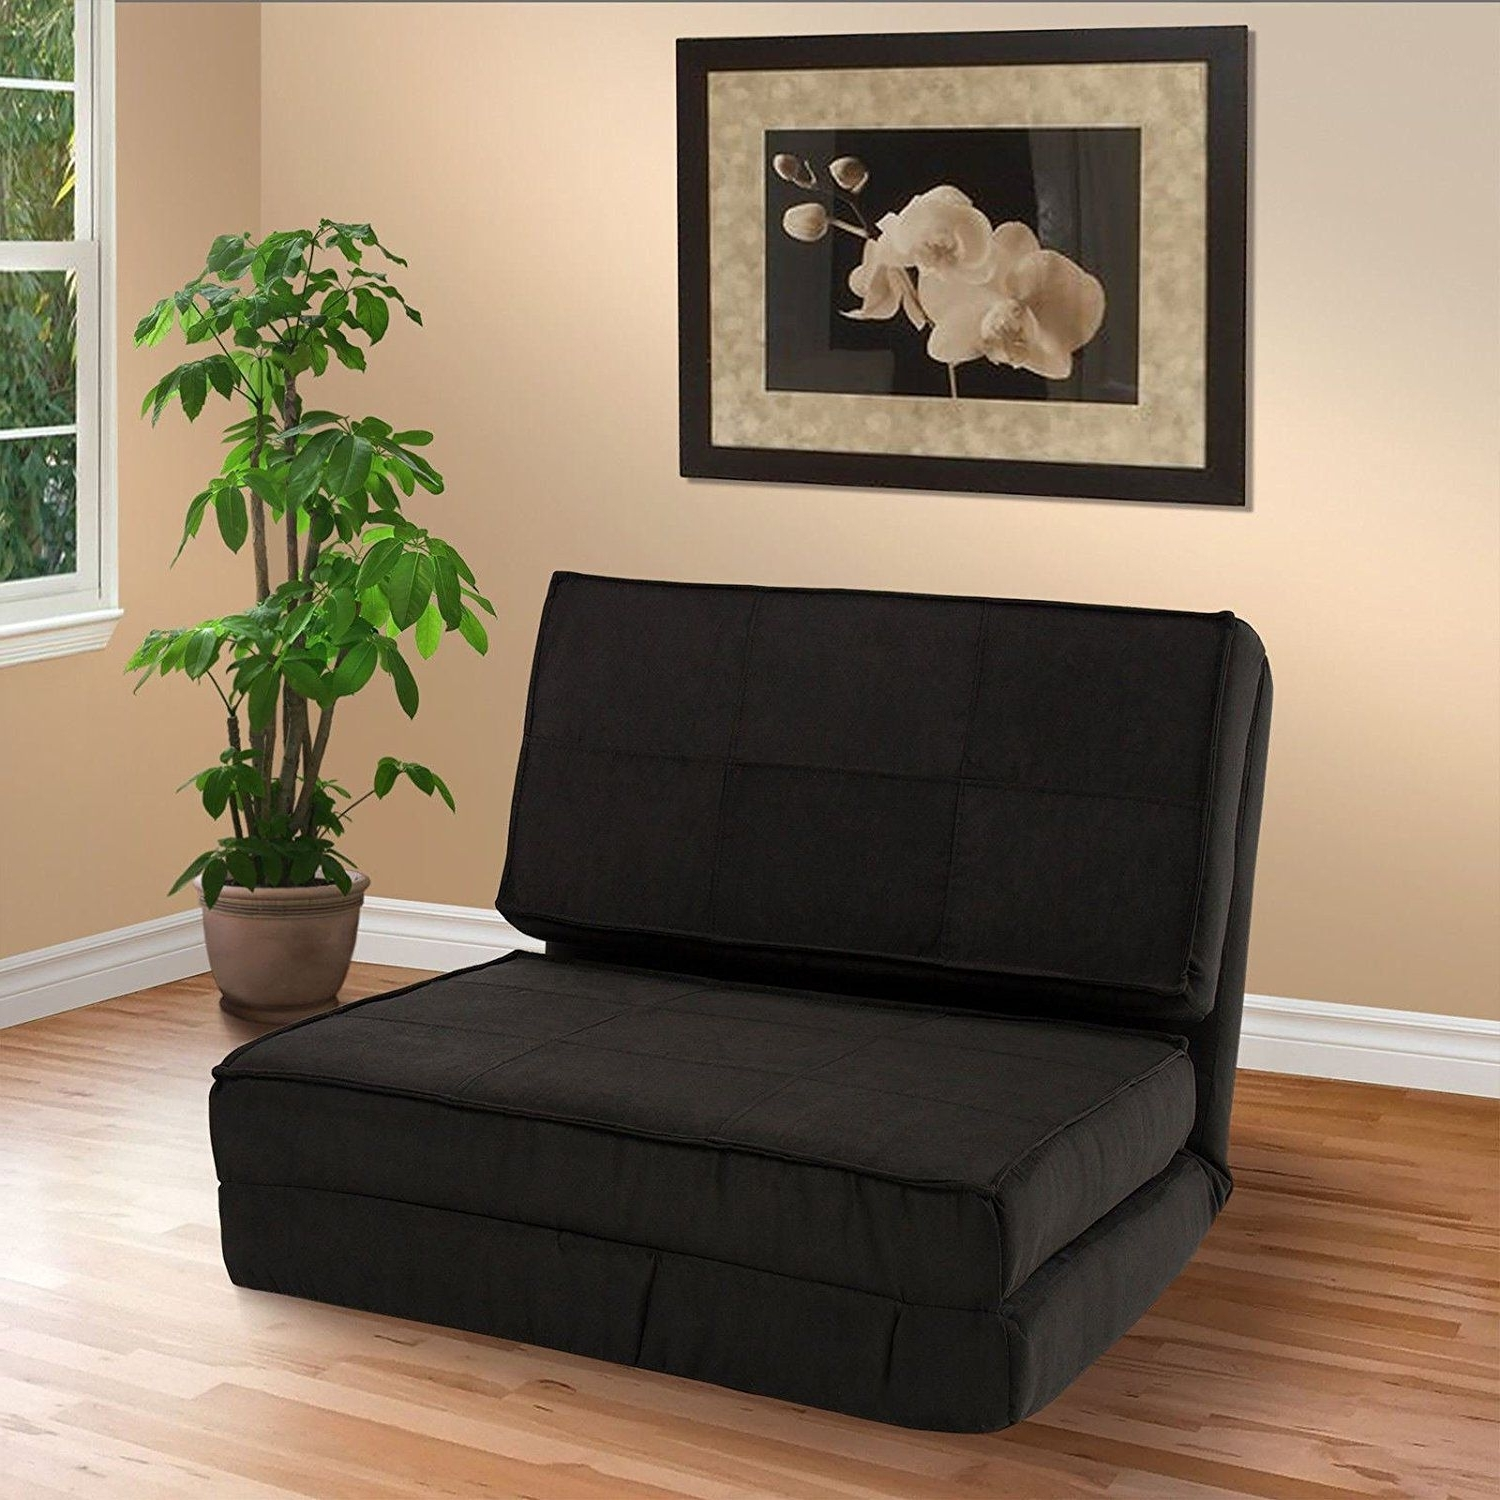 Fold Up Sofa Chairs Inside Latest Fascinating Furniture Pull Up Sofa Bed Foldable Couches That Fold (View 4 of 20)